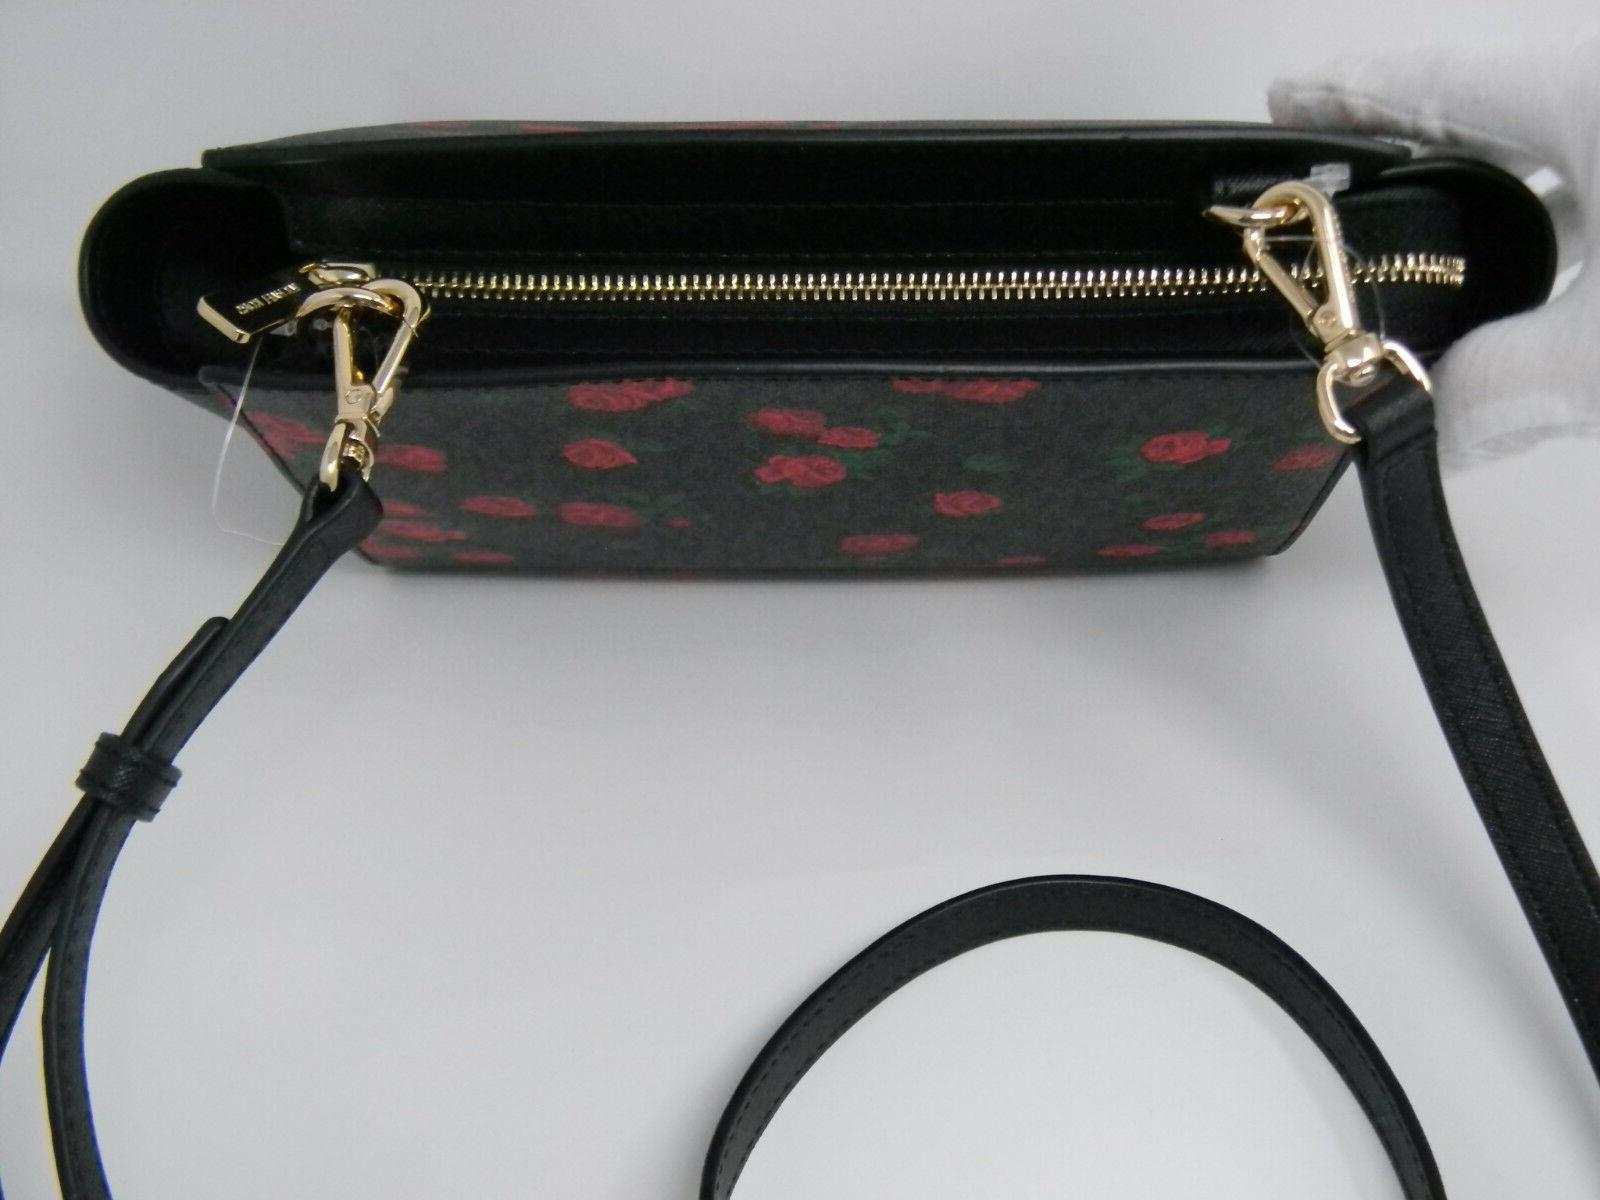 New Kors Black Red Floral Crossbody